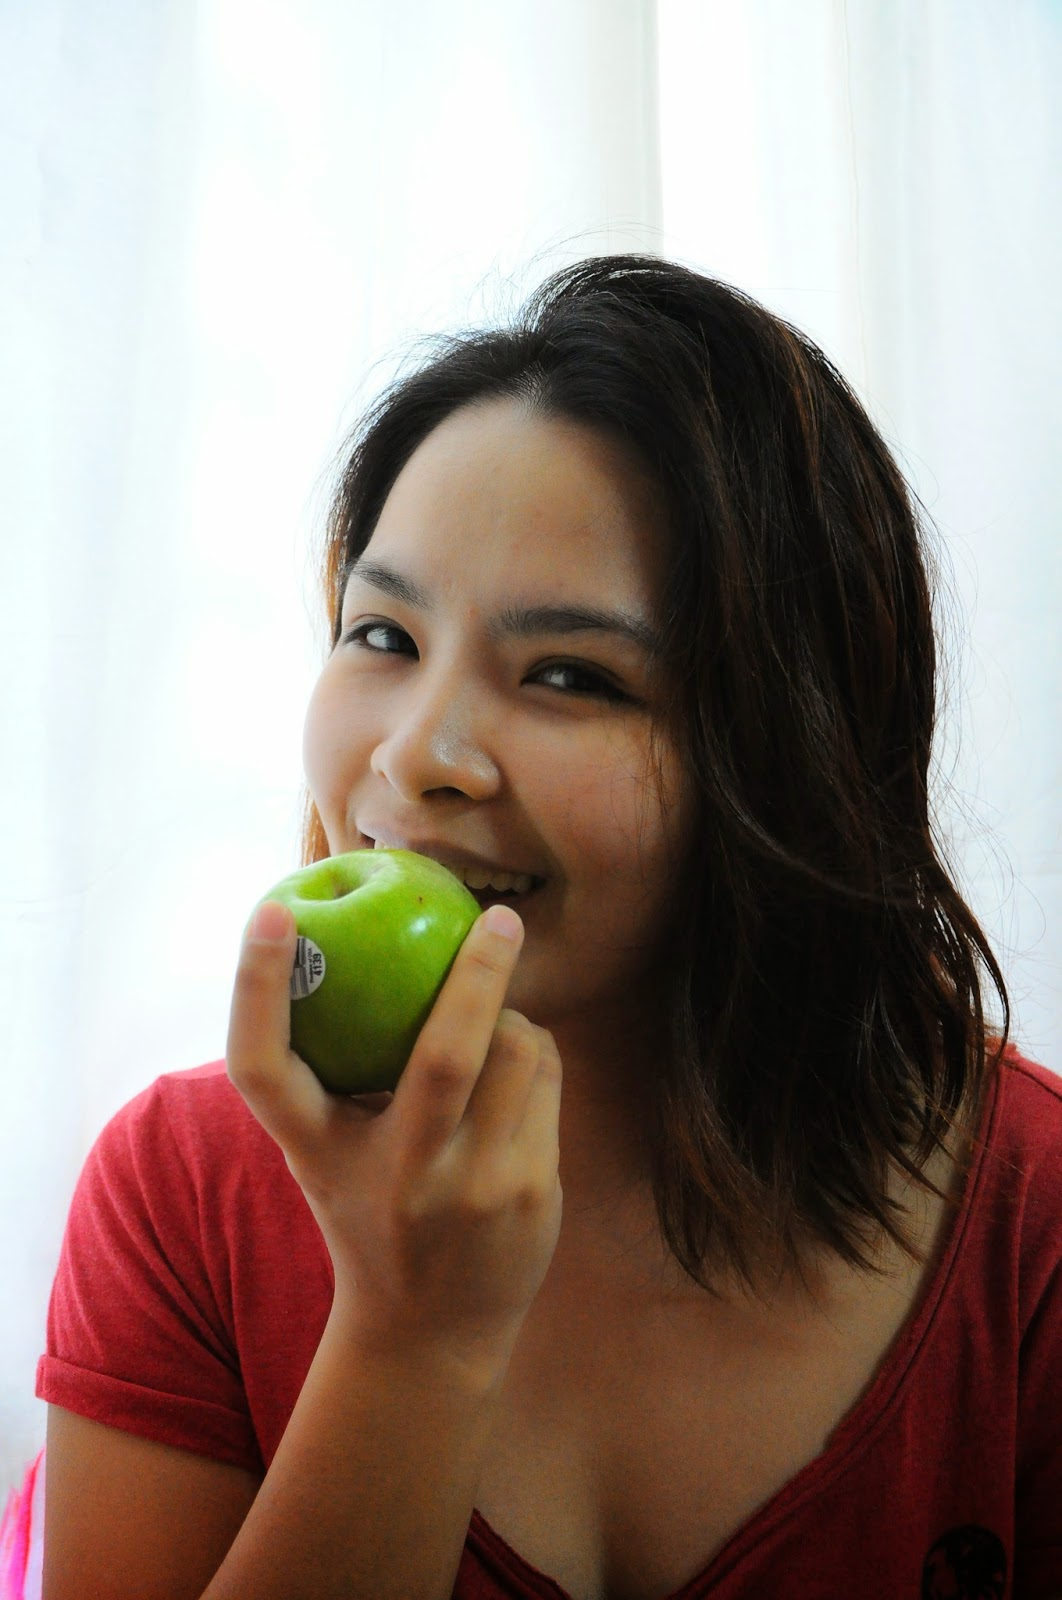 eat green apple